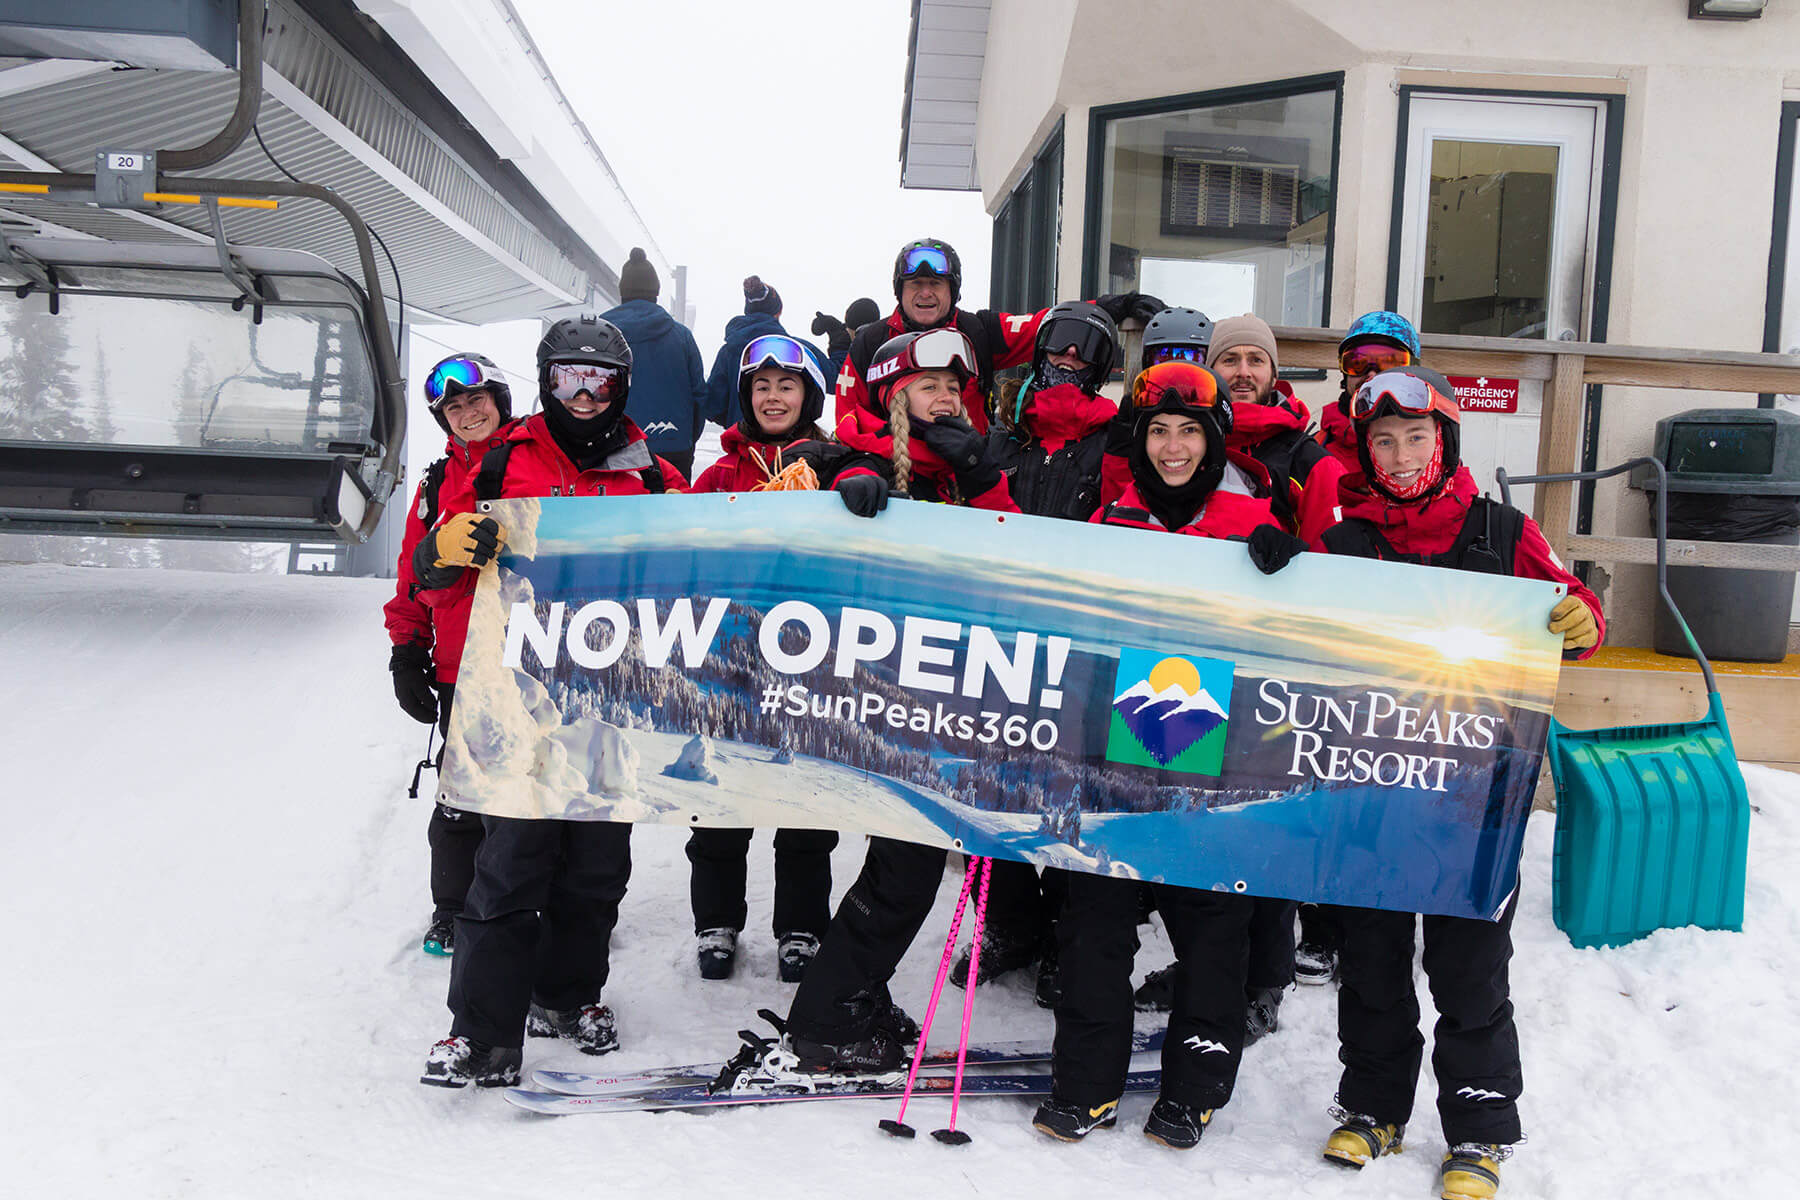 Ski Patrol on Opening Day at Sun Peaks Resort